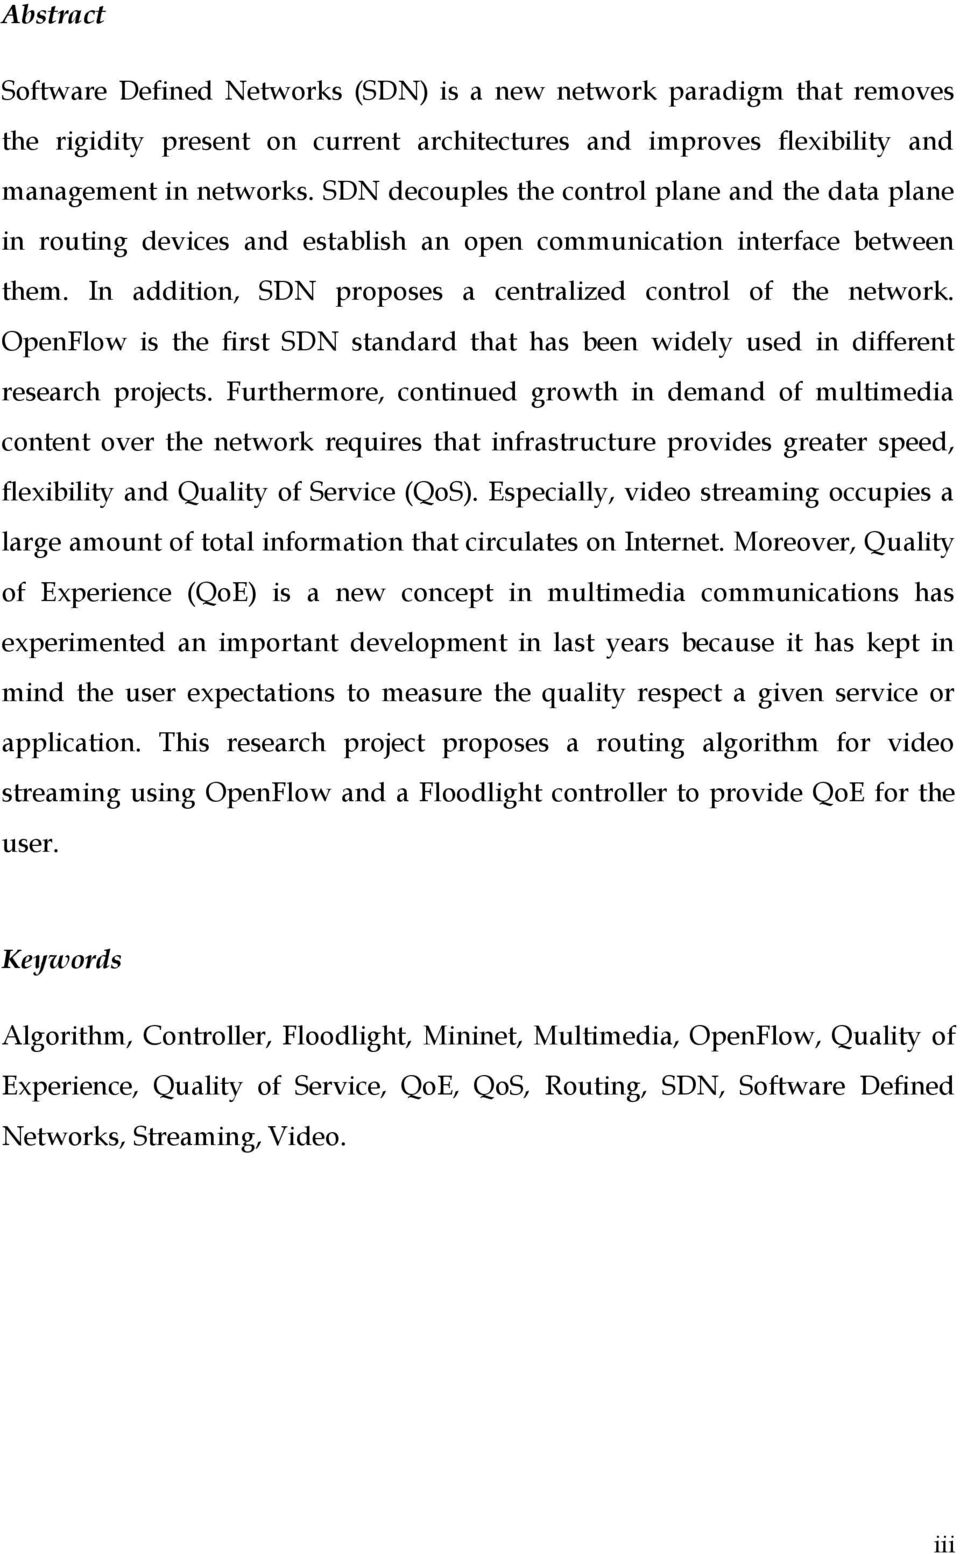 OpenFlow is the first SDN standard that has been widely used in different research projects.